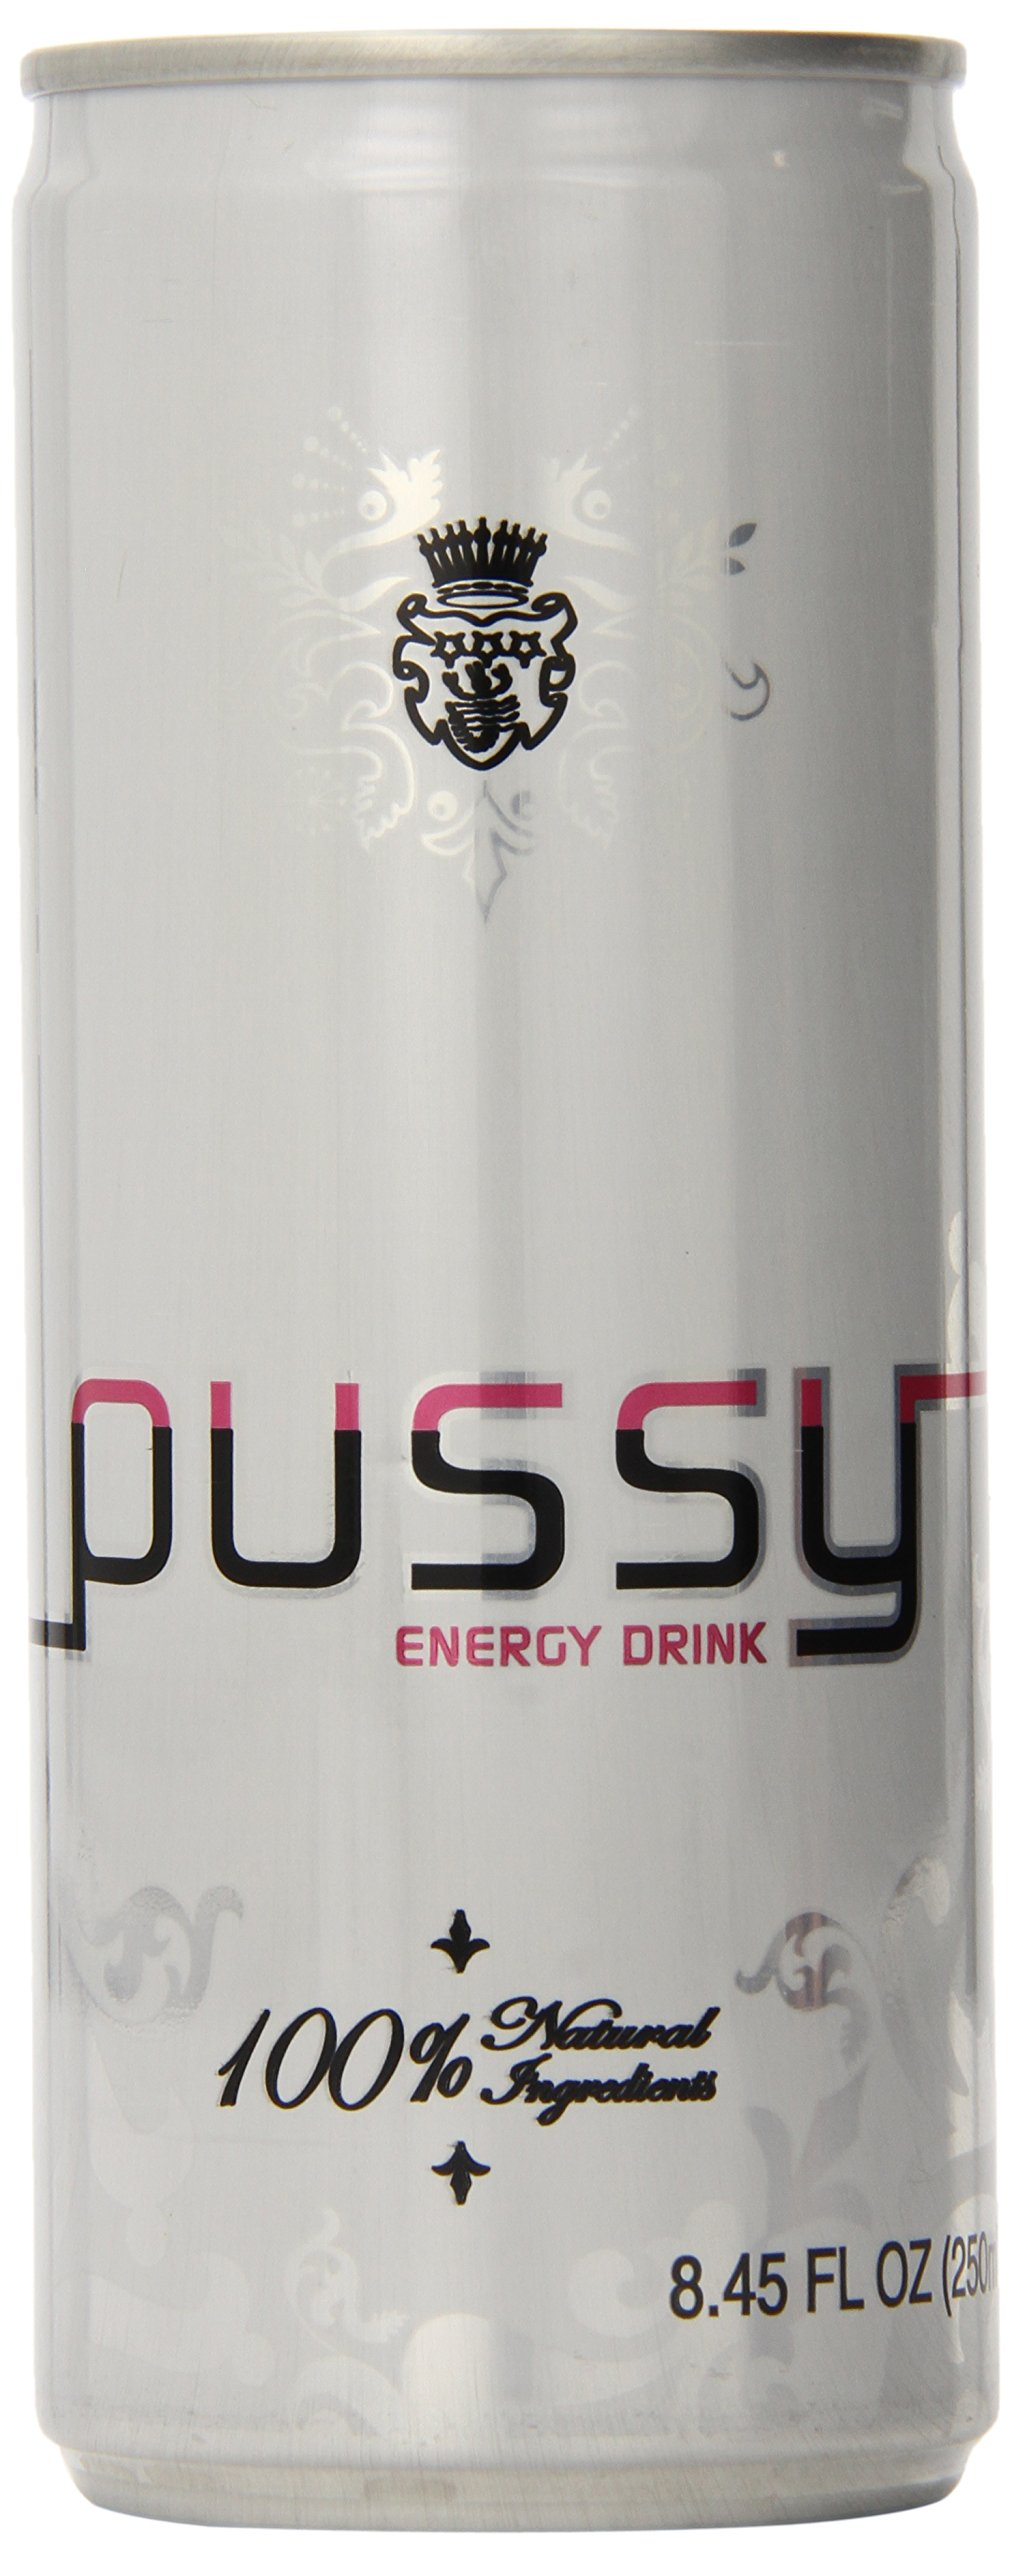 pussy can